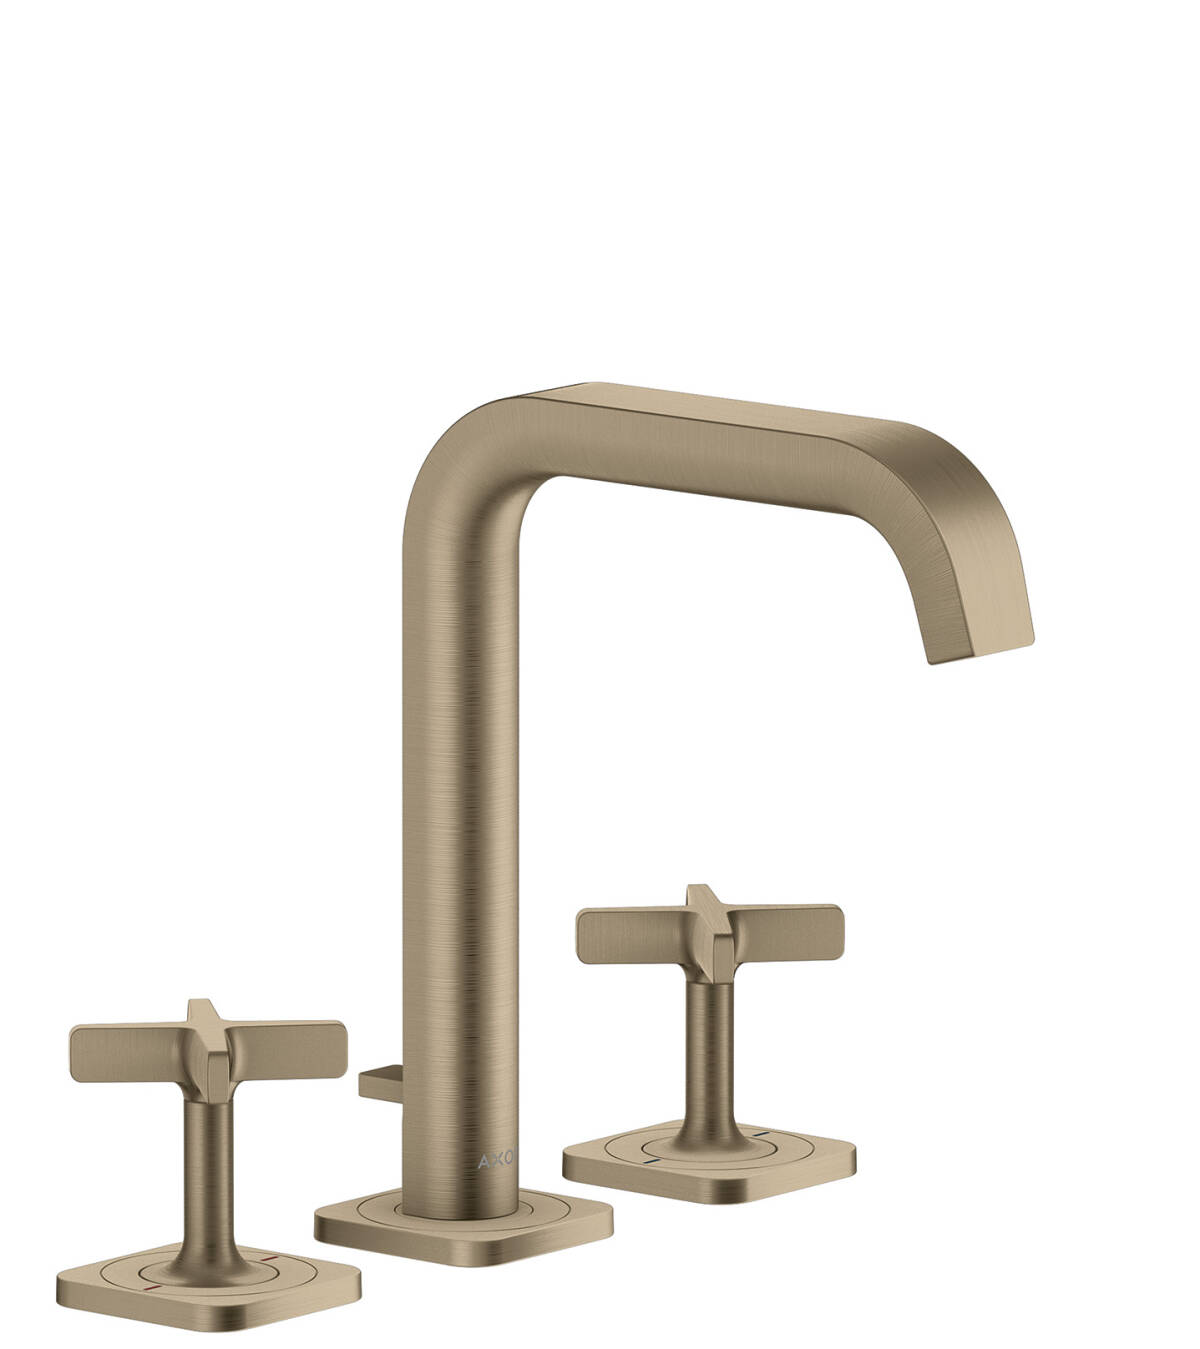 3-hole basin mixer 170 with escutcheons and pop-up waste set, Brushed Nickel, 36108820